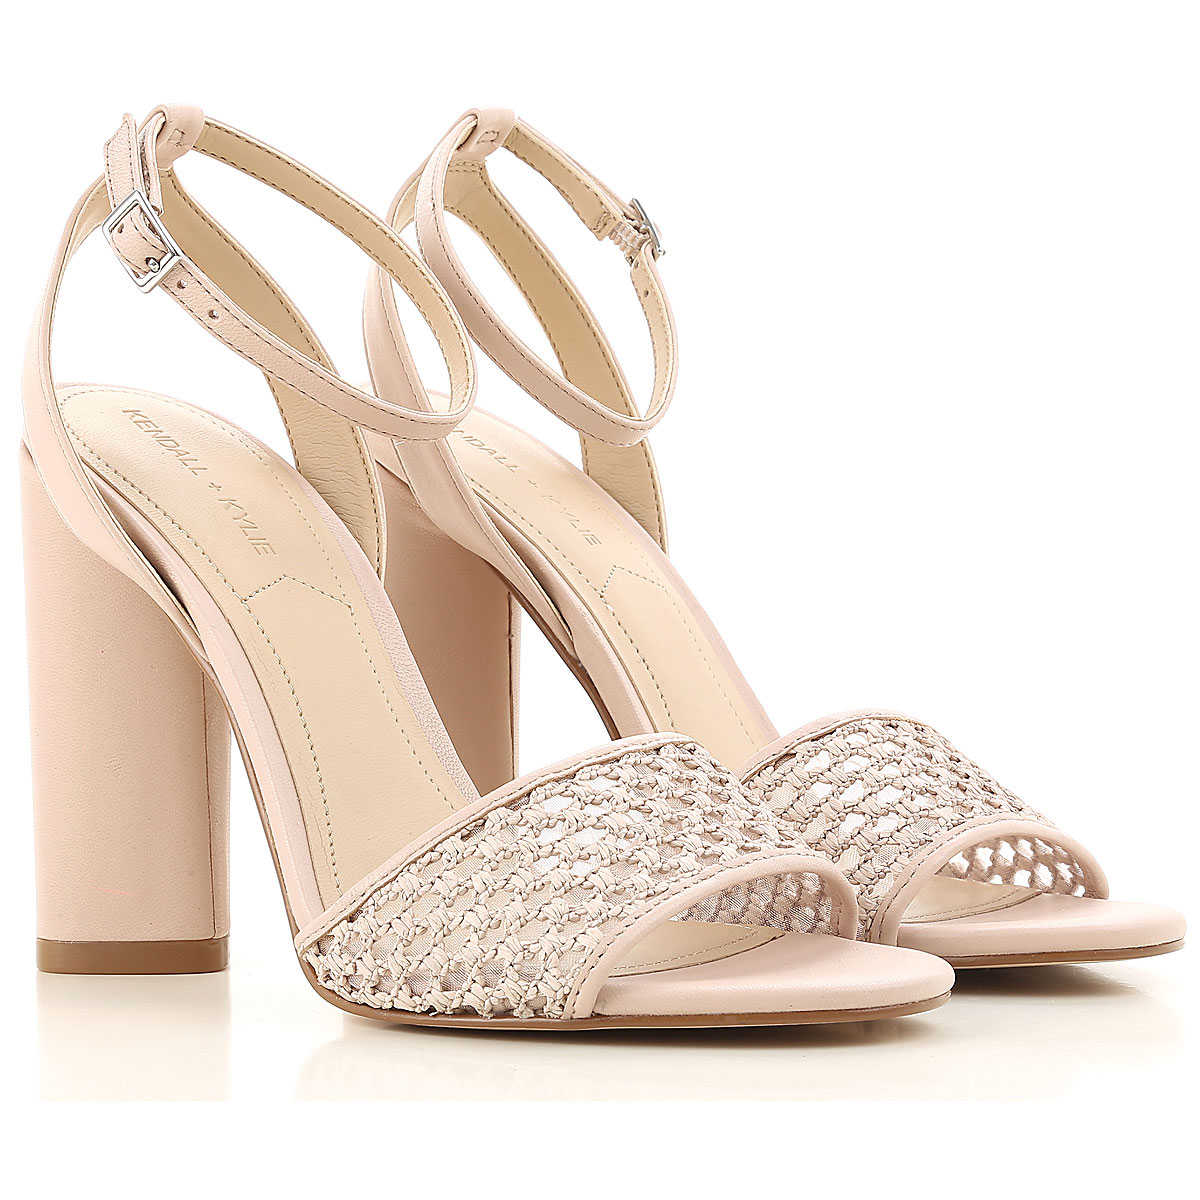 Kendall Kylie Womens Shoes On Sale in Outlet Powder Pink SE - GOOFASH